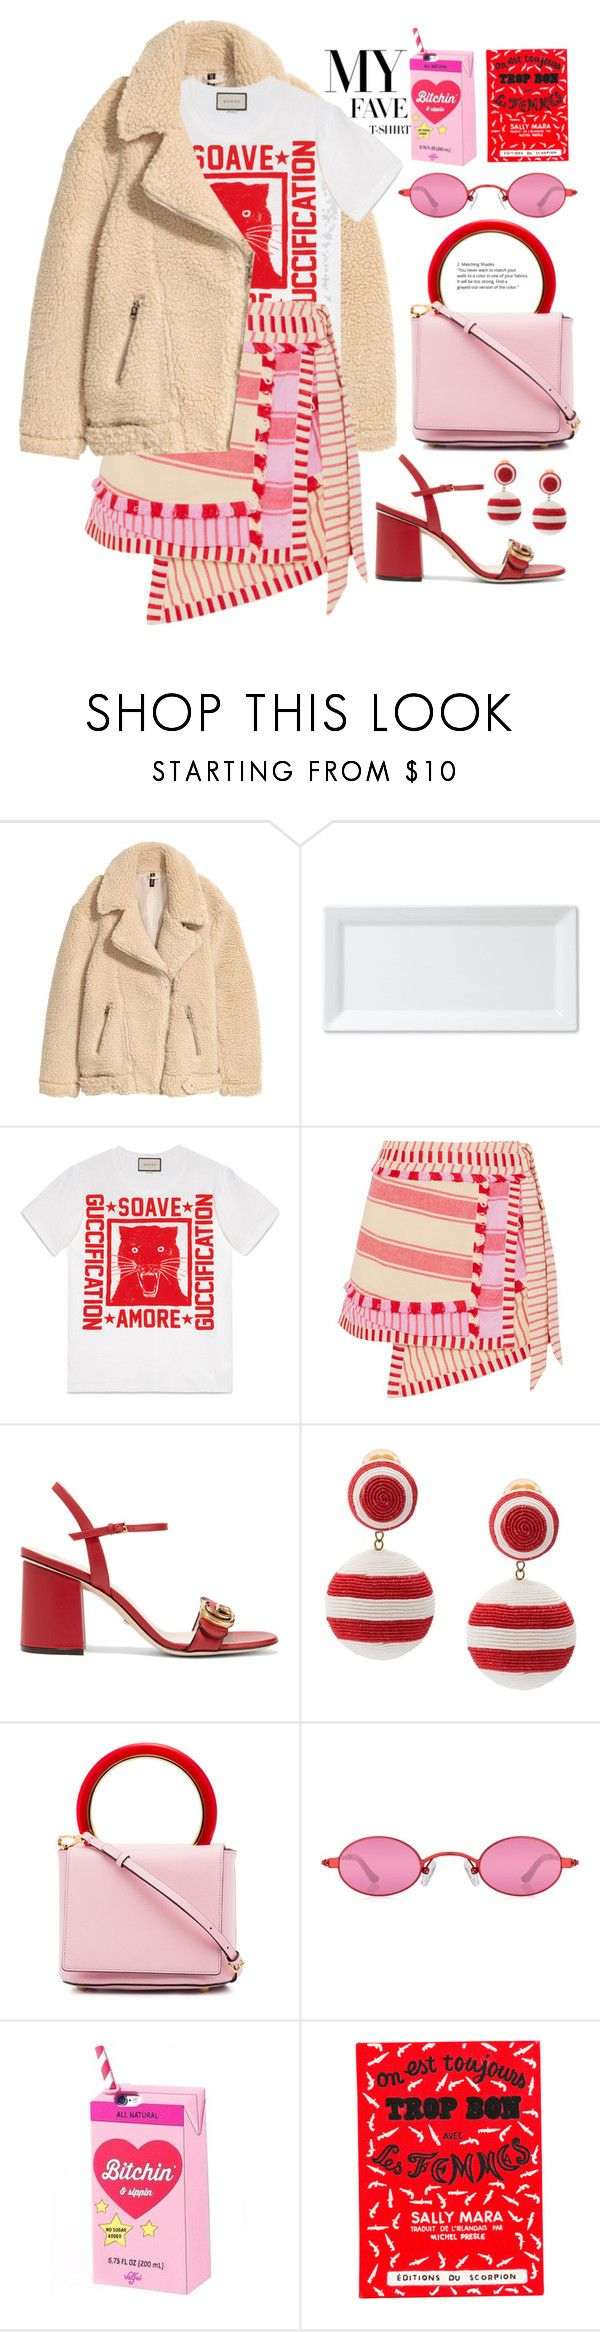 """Gucci t-shirt "" by fcris7176 on Polyvore featuring H&M, Q Squared, Gucci, Dodo Bar Or, Rebecca de Ravenel, Marni, Olympia Le-Tan and MyFaveTshirt"